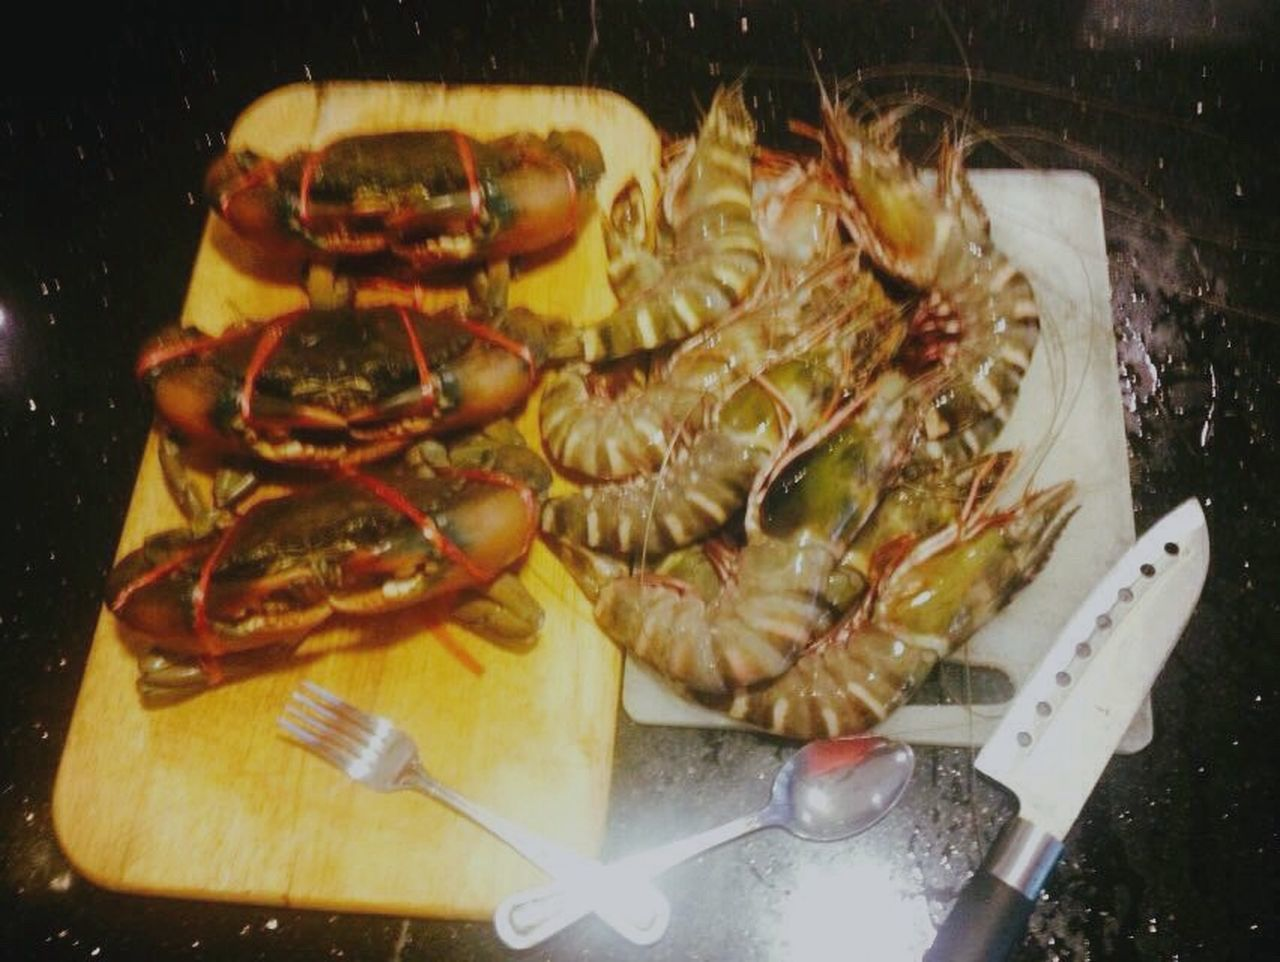 Yummm Food Seafoods Cooking At Home Healthy Eating Freshness Tasty Seafood Lovers